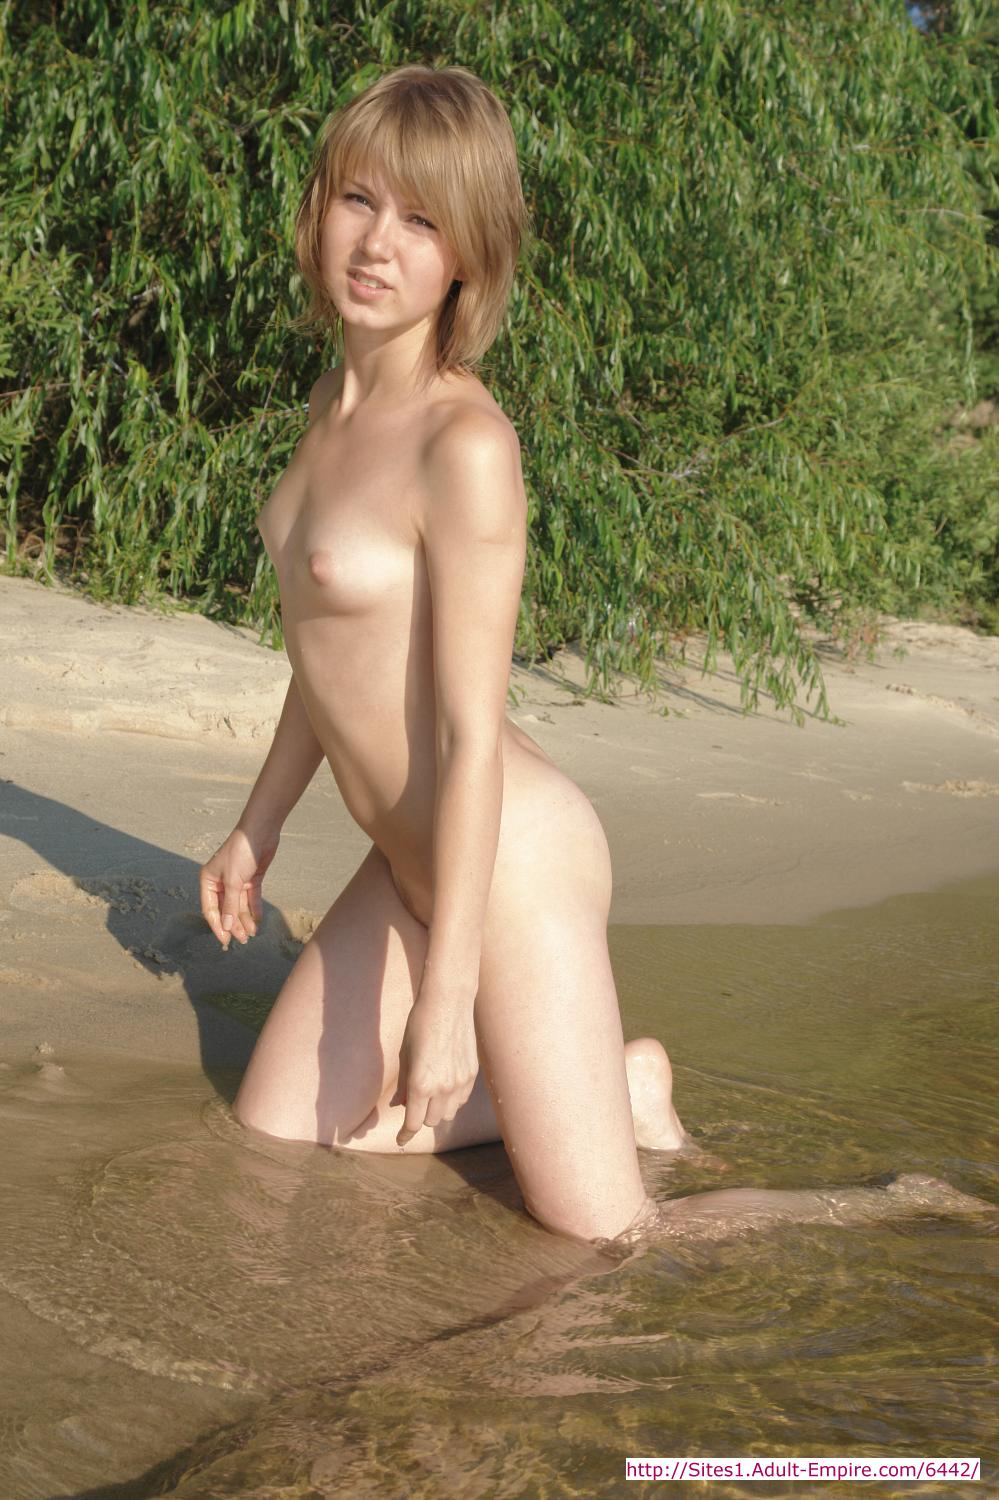 Teens fuck on beach